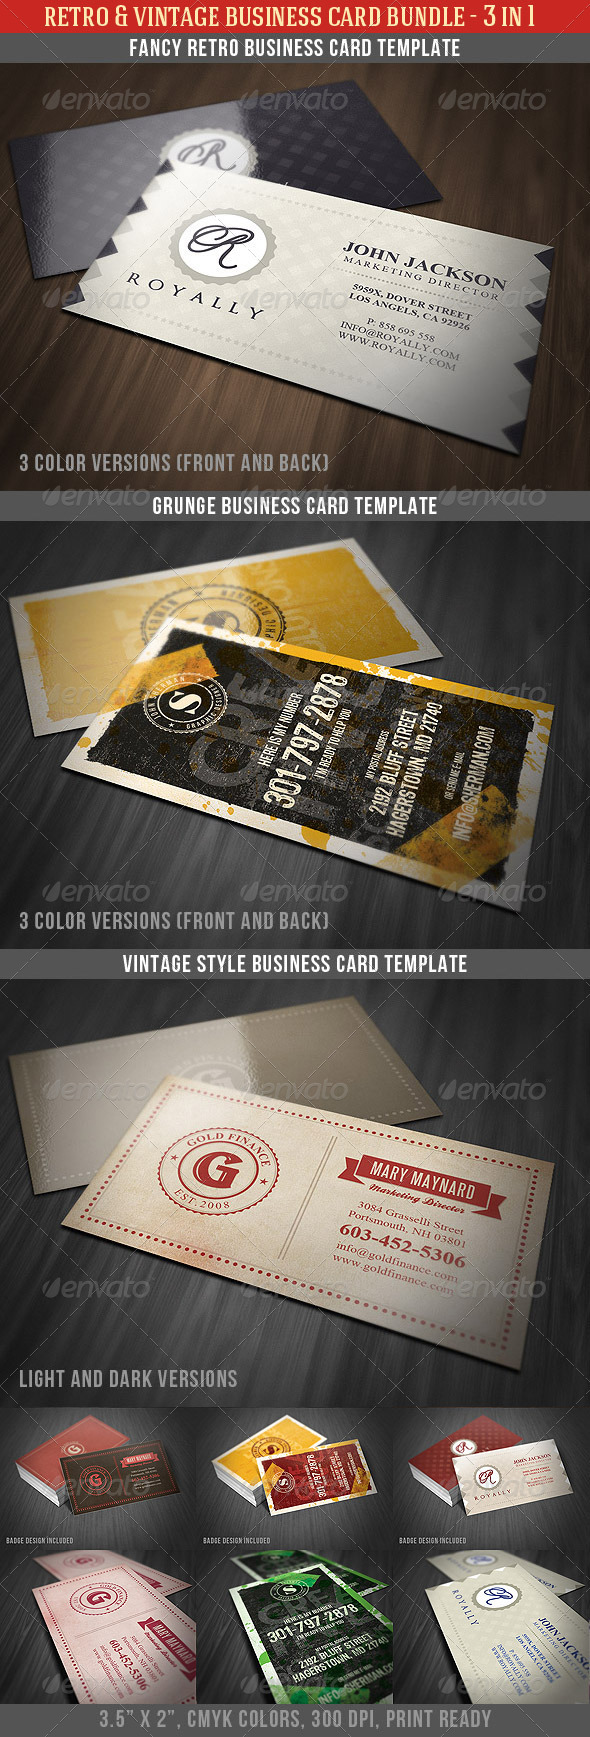 Retro & Vintage Business Card Bundle - Retro/Vintage Business Cards